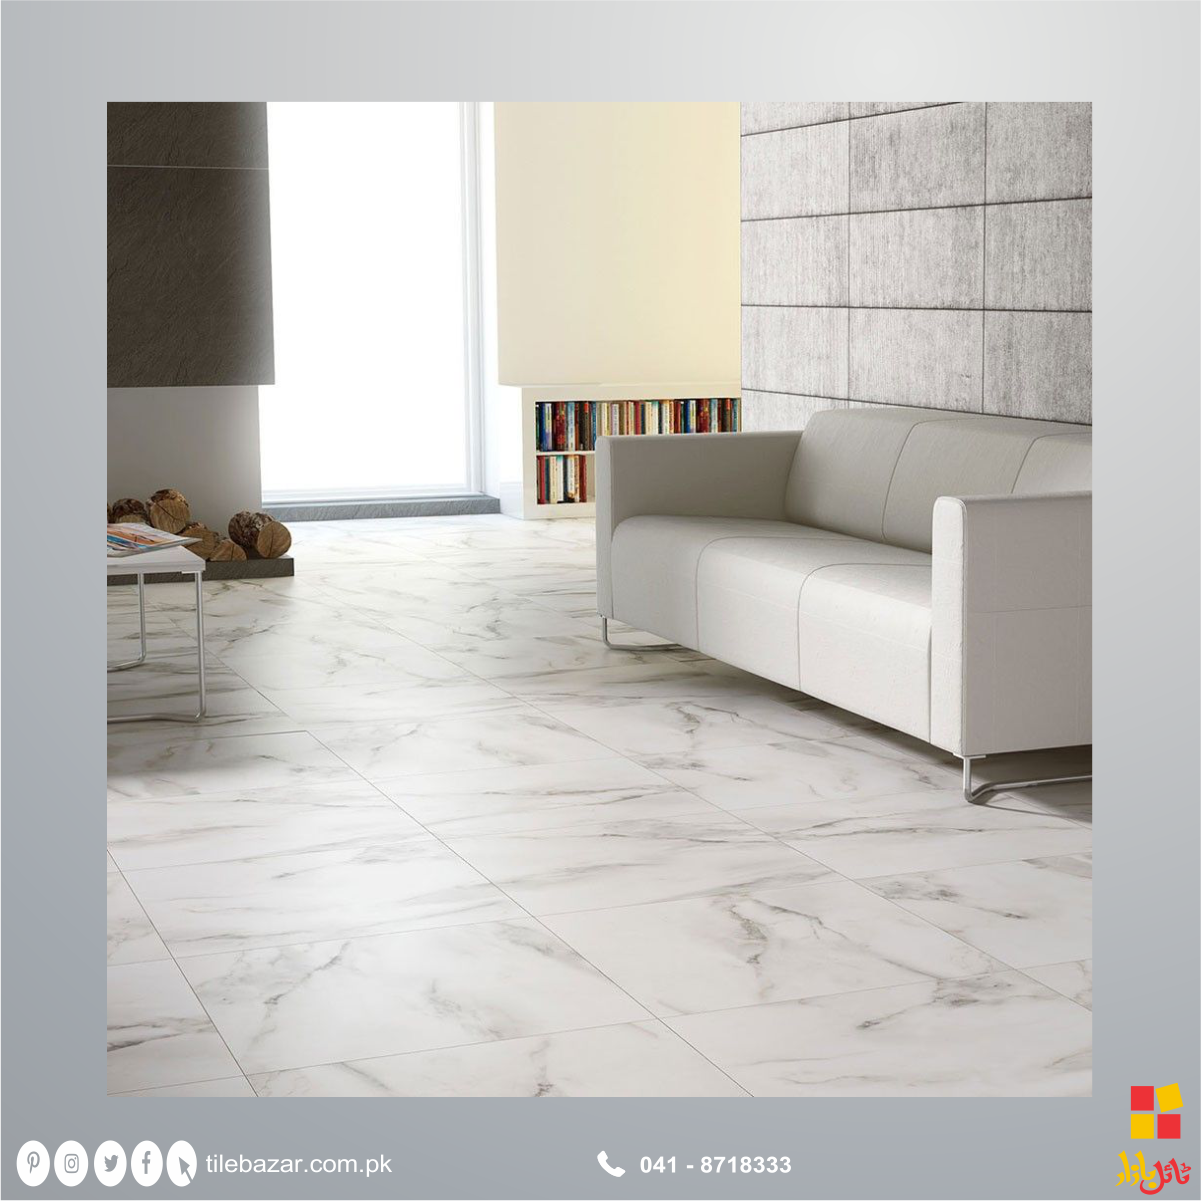 Encase Your Room With The Sensation Of These Beutiful Tiles Visit Our Nearest Outlet For Living Room Tiles Tile Floor Living Room Floor Tile Design